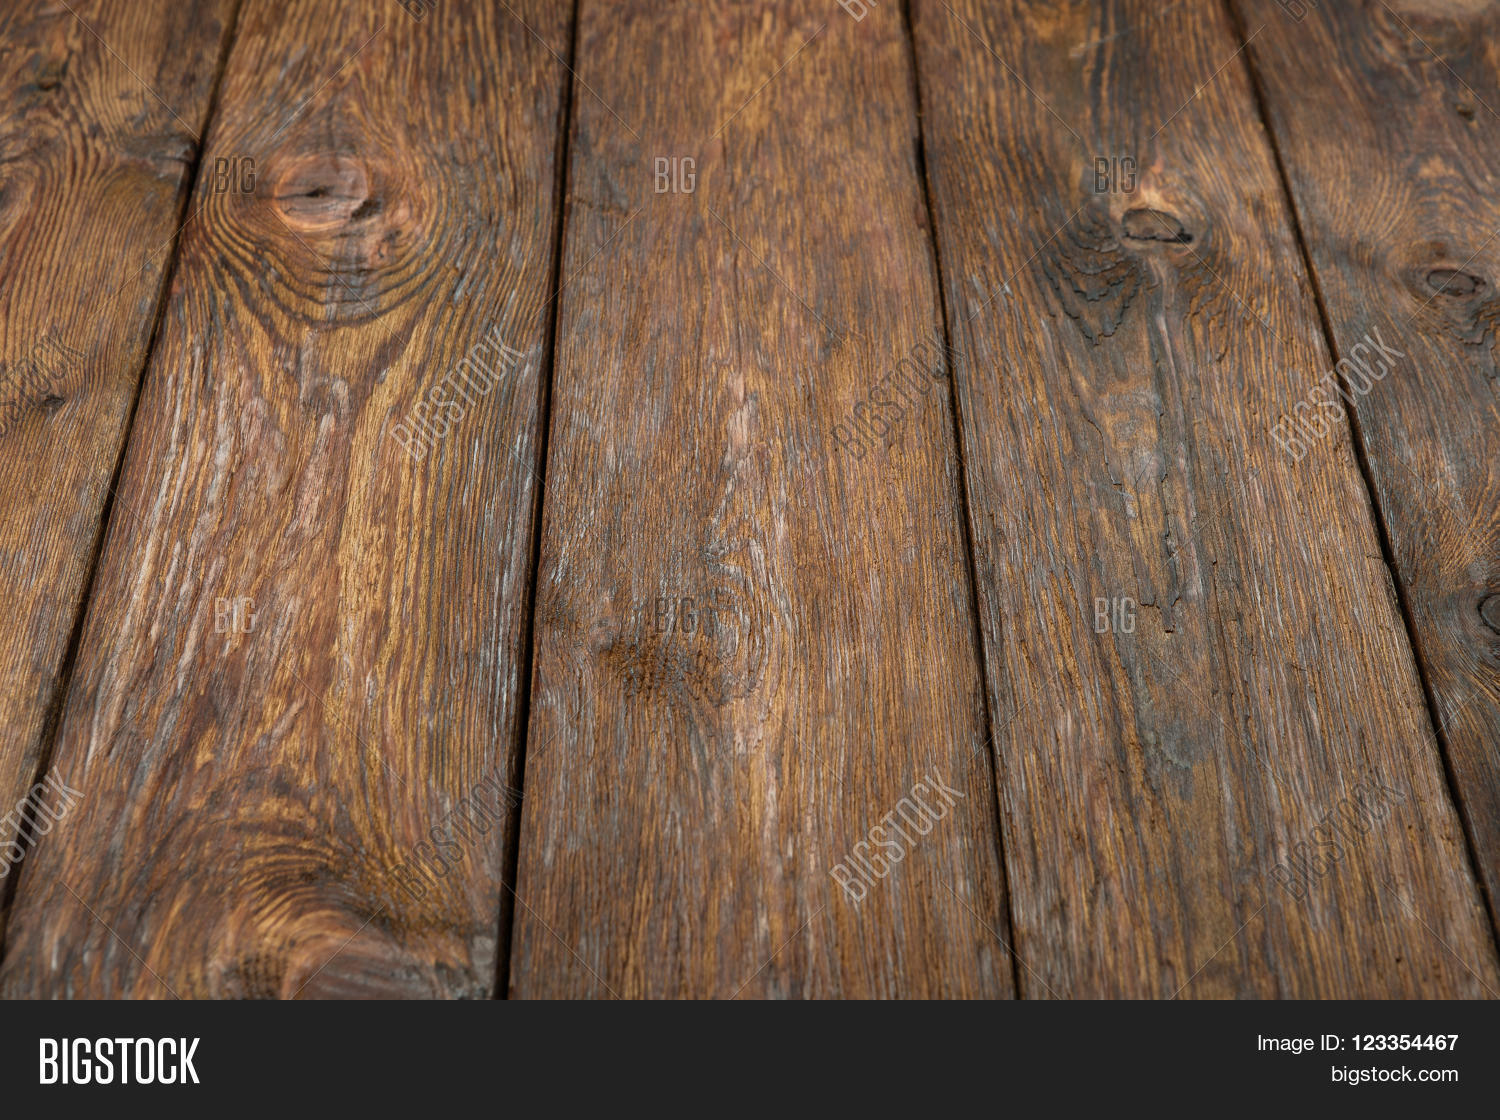 Wooden Brown Rustic Texture Rustic Image Amp Photo Bigstock